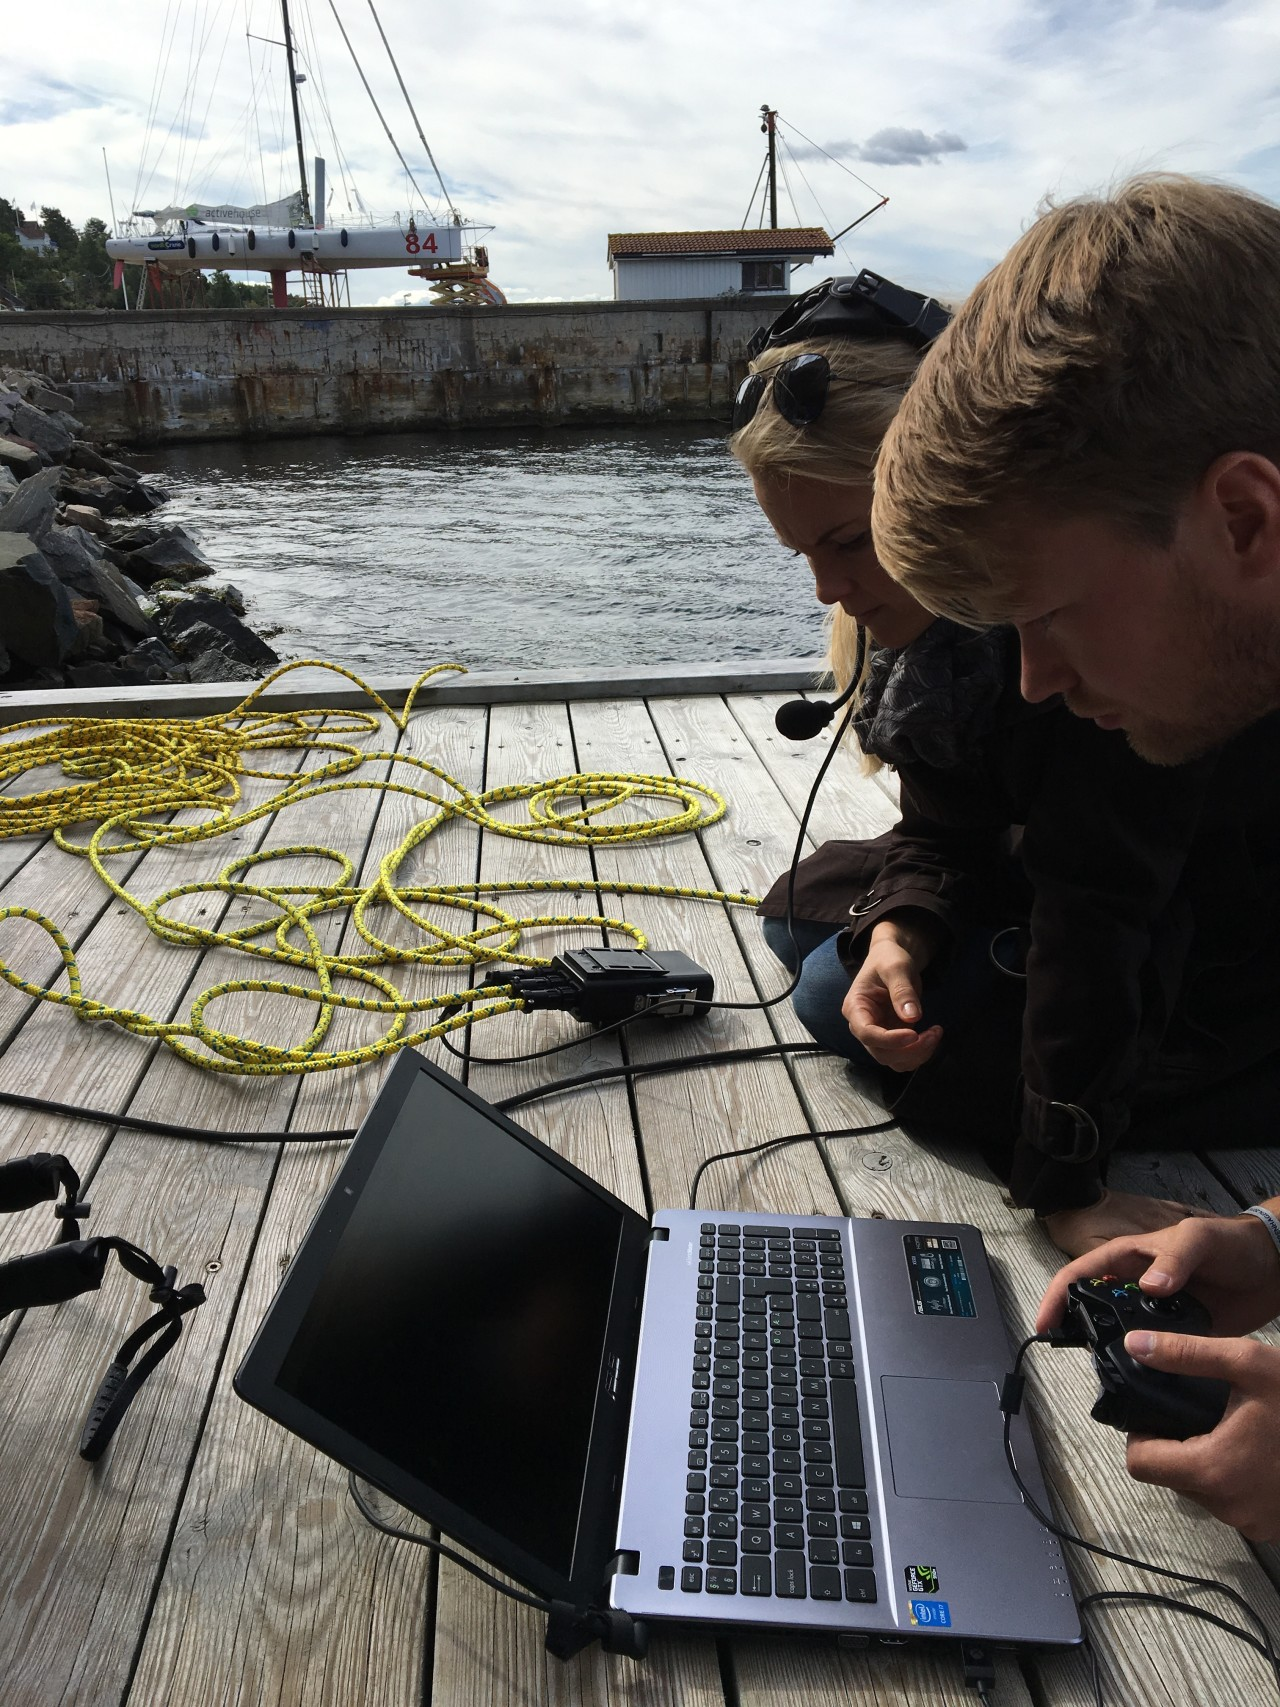 Andreas driving the drone with NRK's News Anchor,  watching closely to make a Live underwater interview.